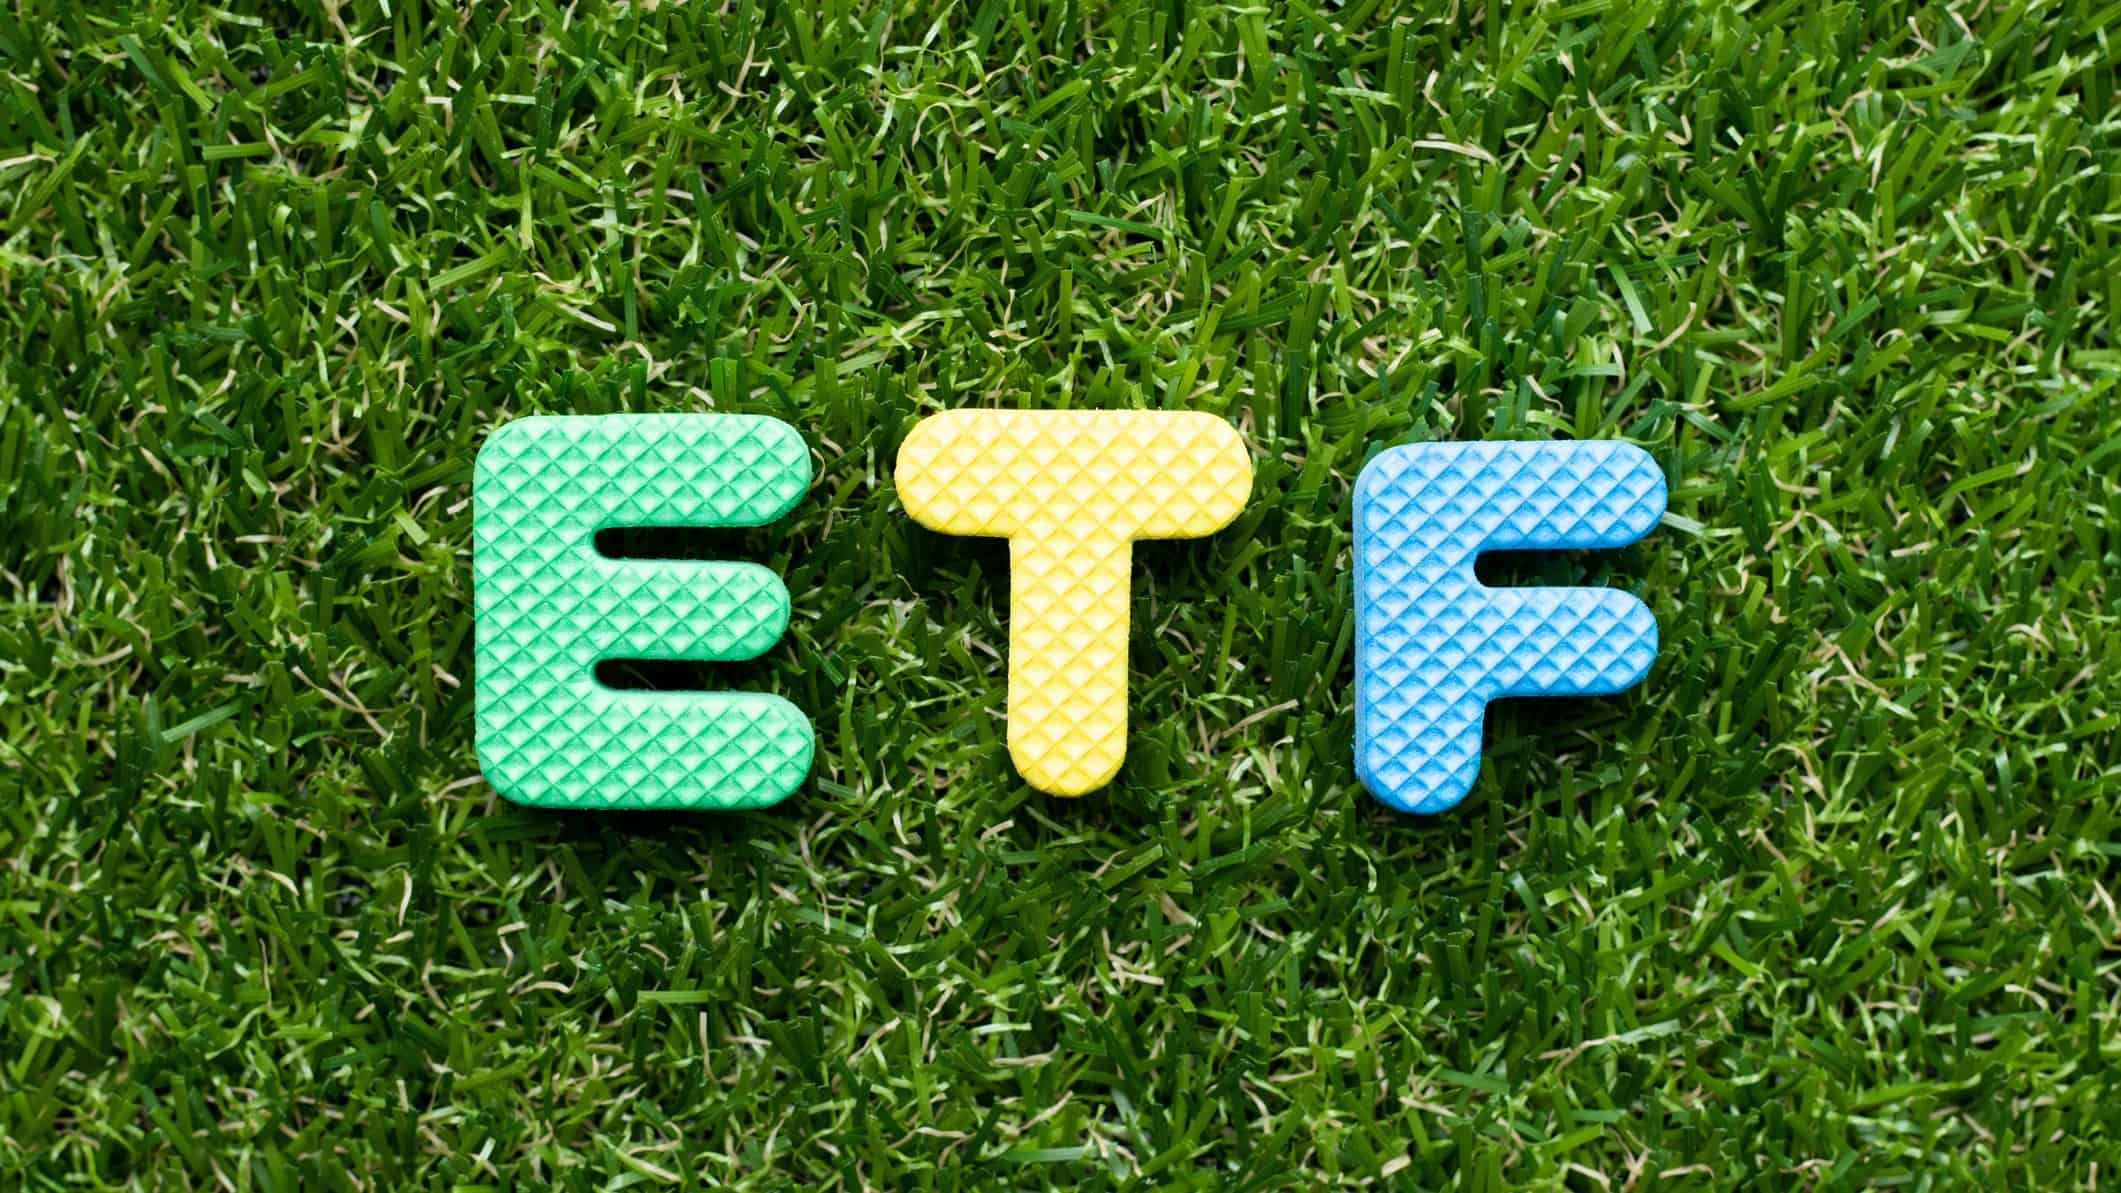 green etf represented by letters E,T and F sitting on green grass